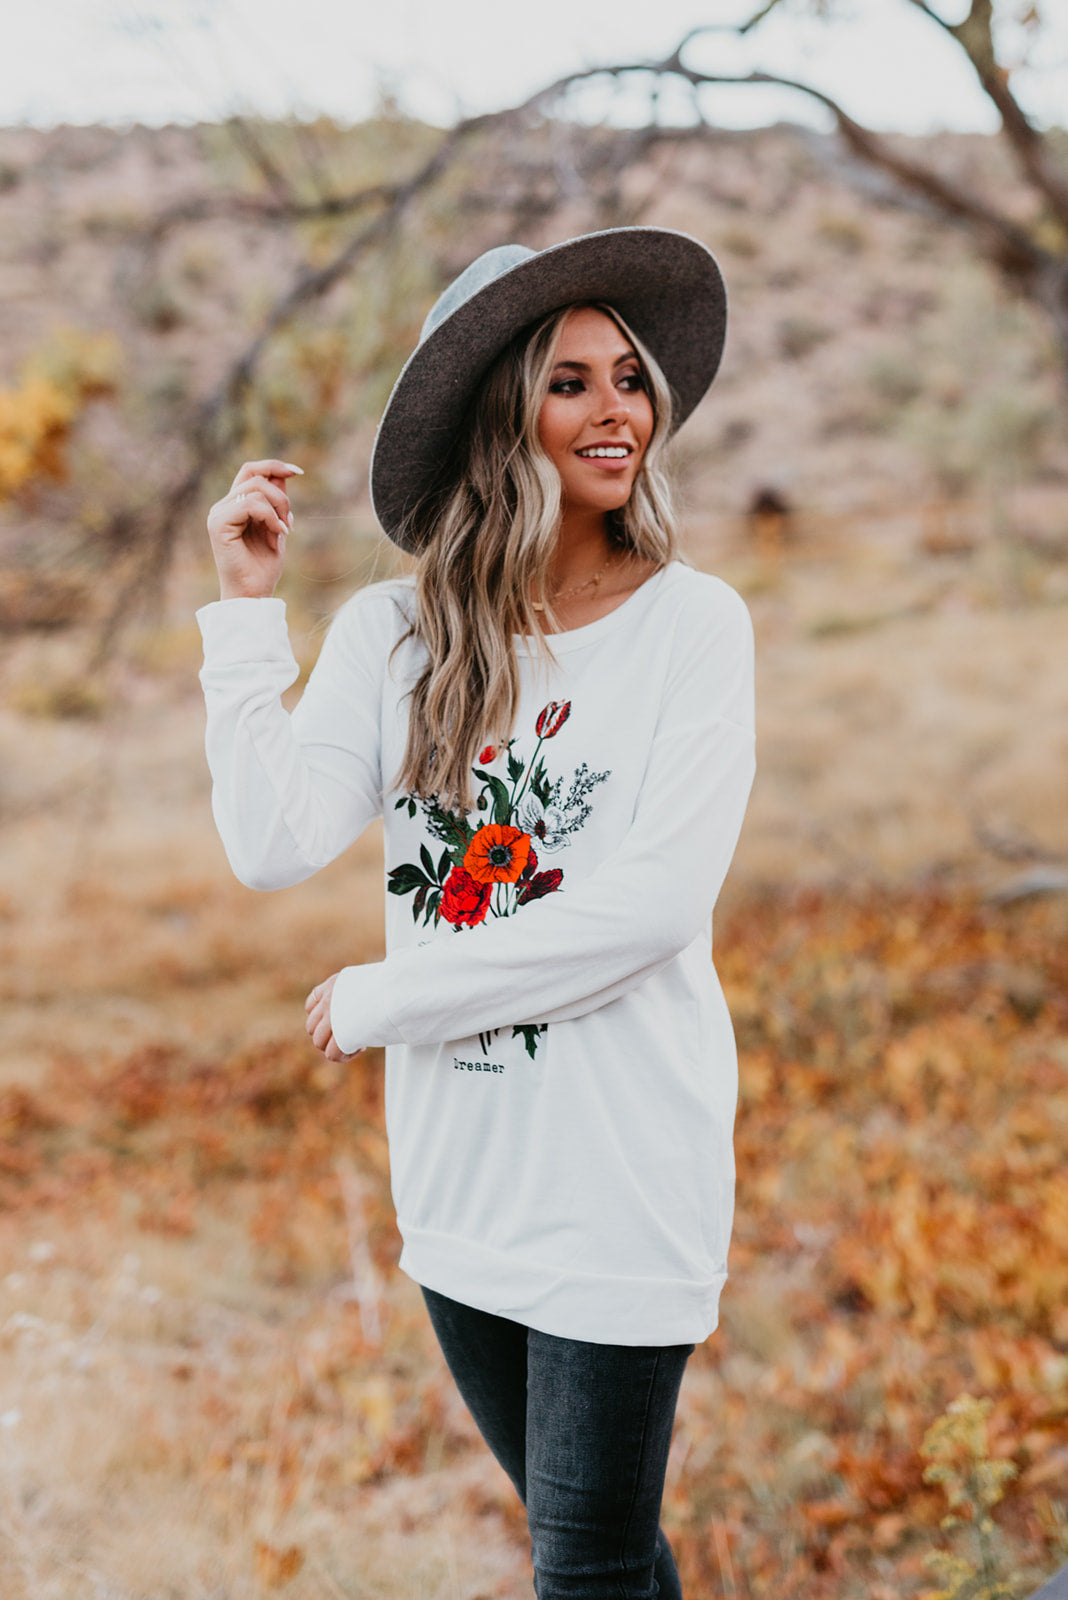 THE DREAMER WILDFLOWER LONG SLEEVE TOP IN OFF WHITE